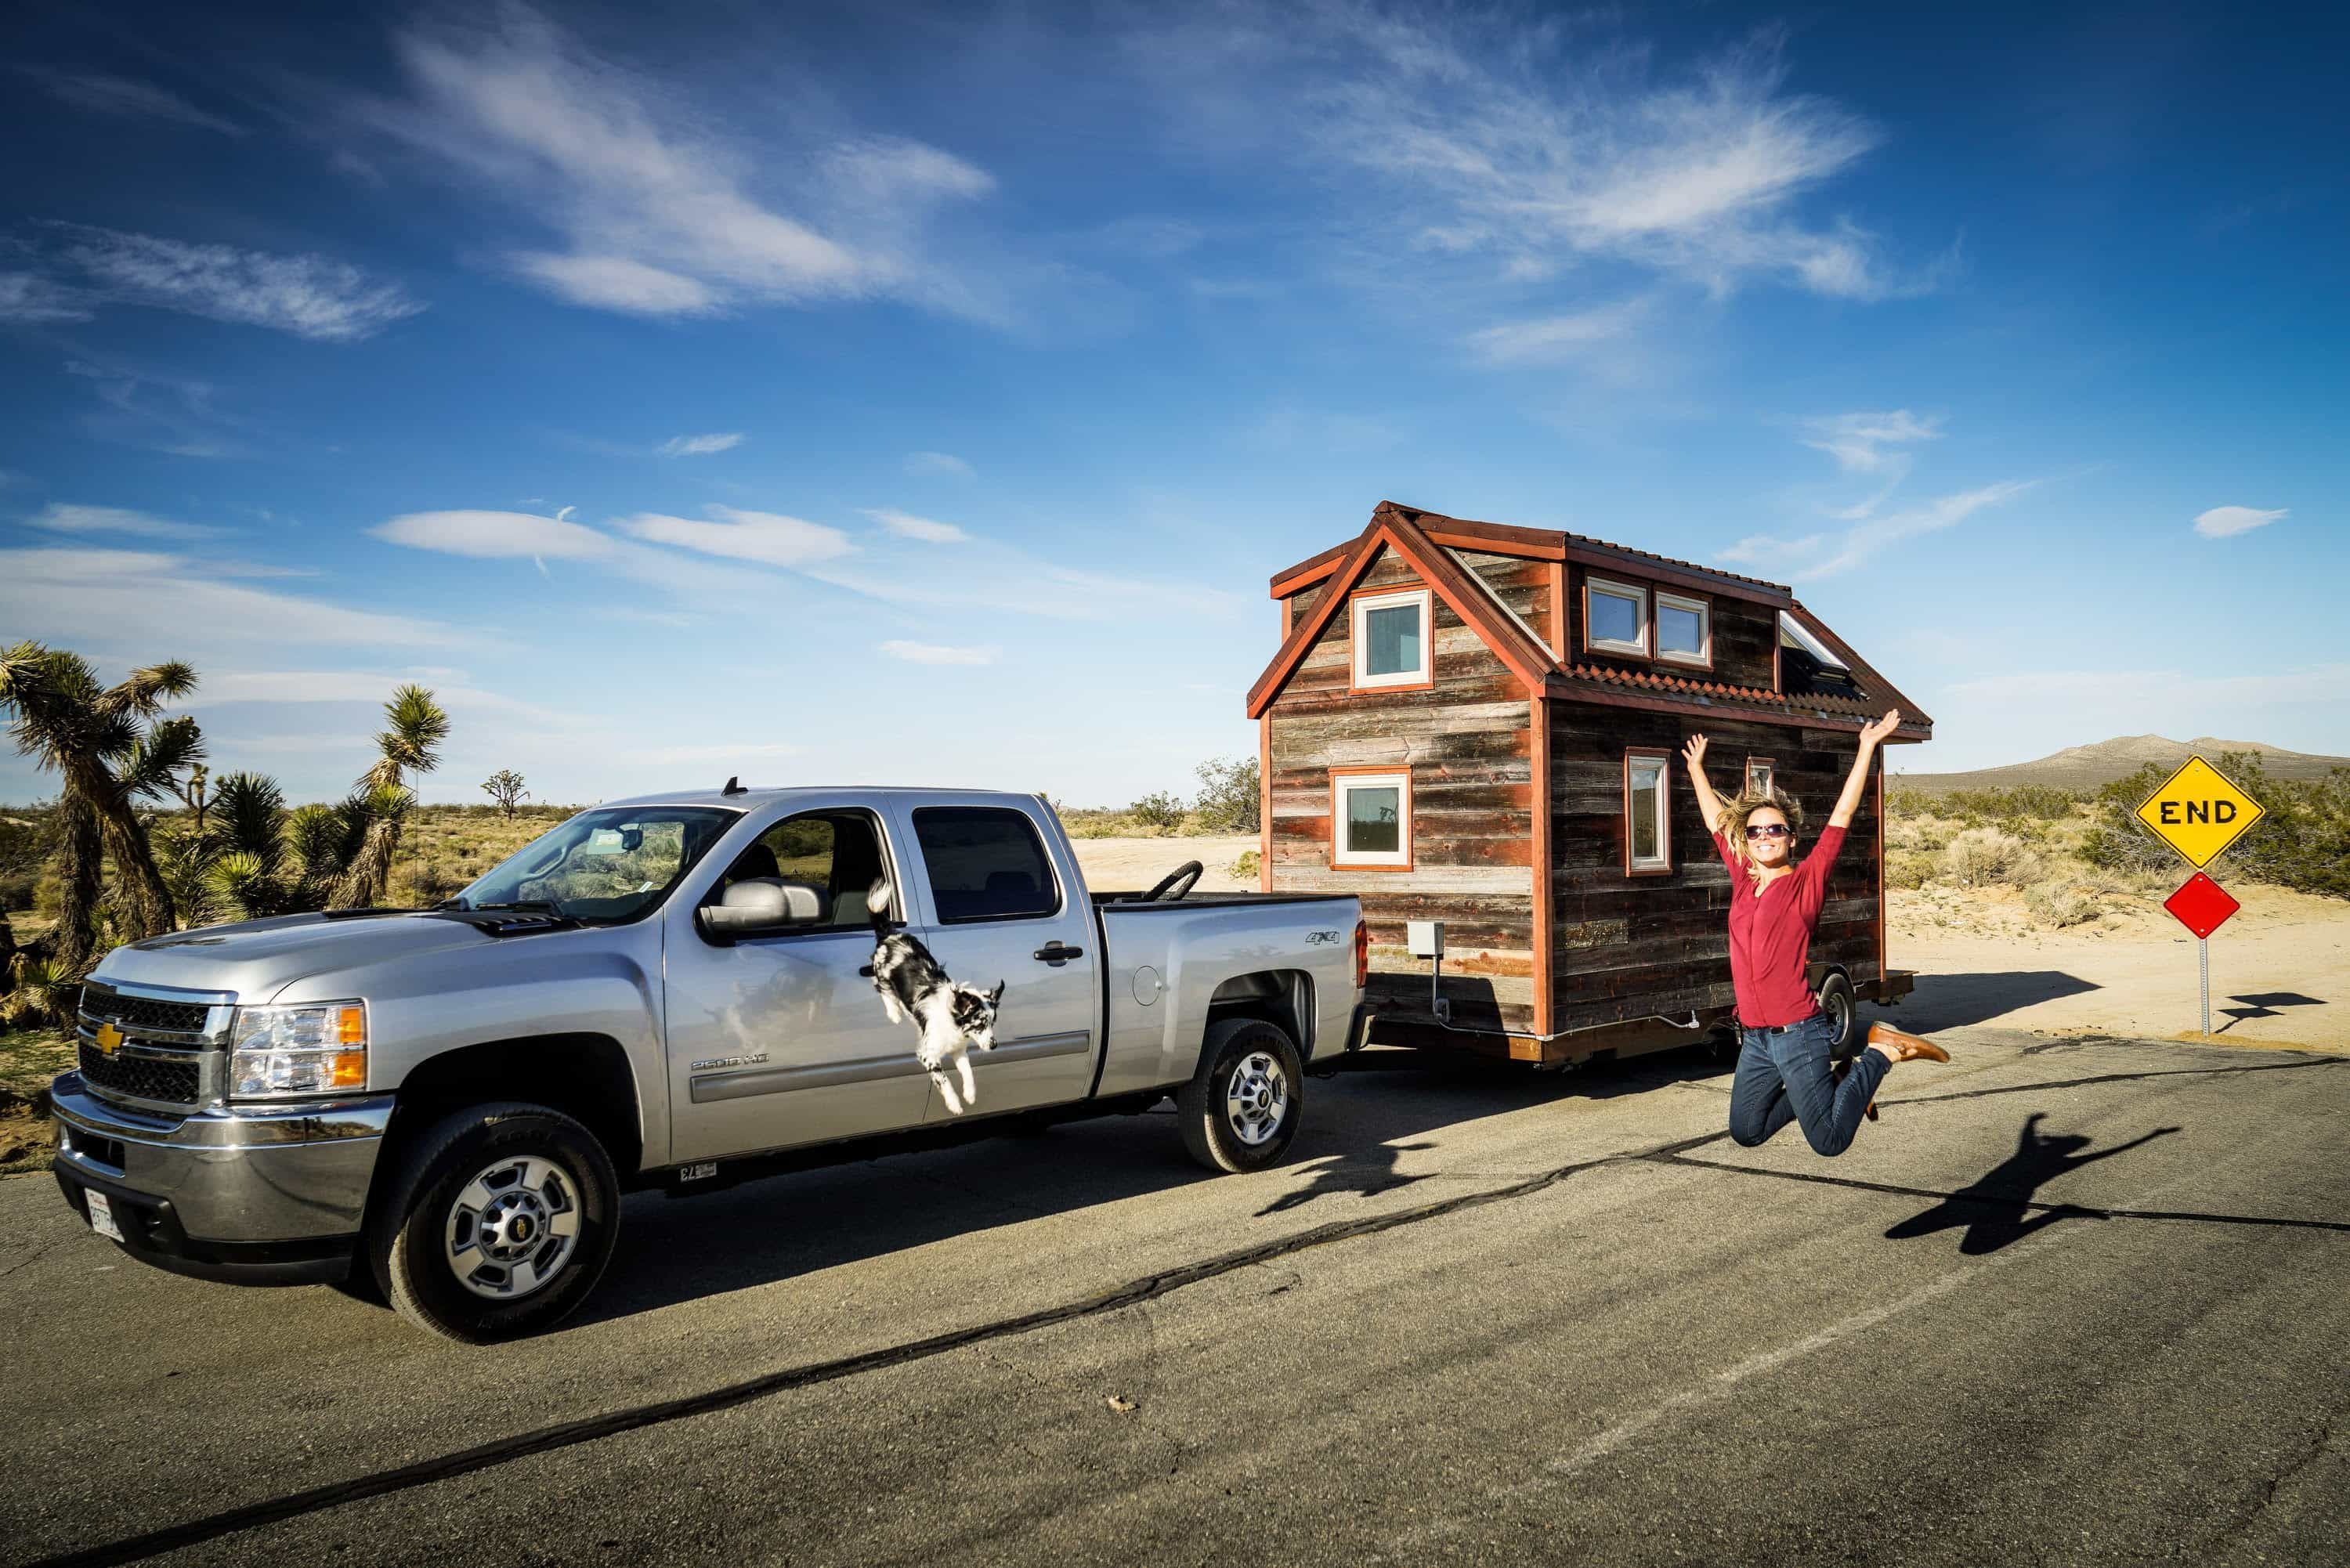 Resources For Tiny House And Travel Enthusiasts Tiny House Giant Journey Tiny Mobile House Tiny House On Wheels Building A Tiny House